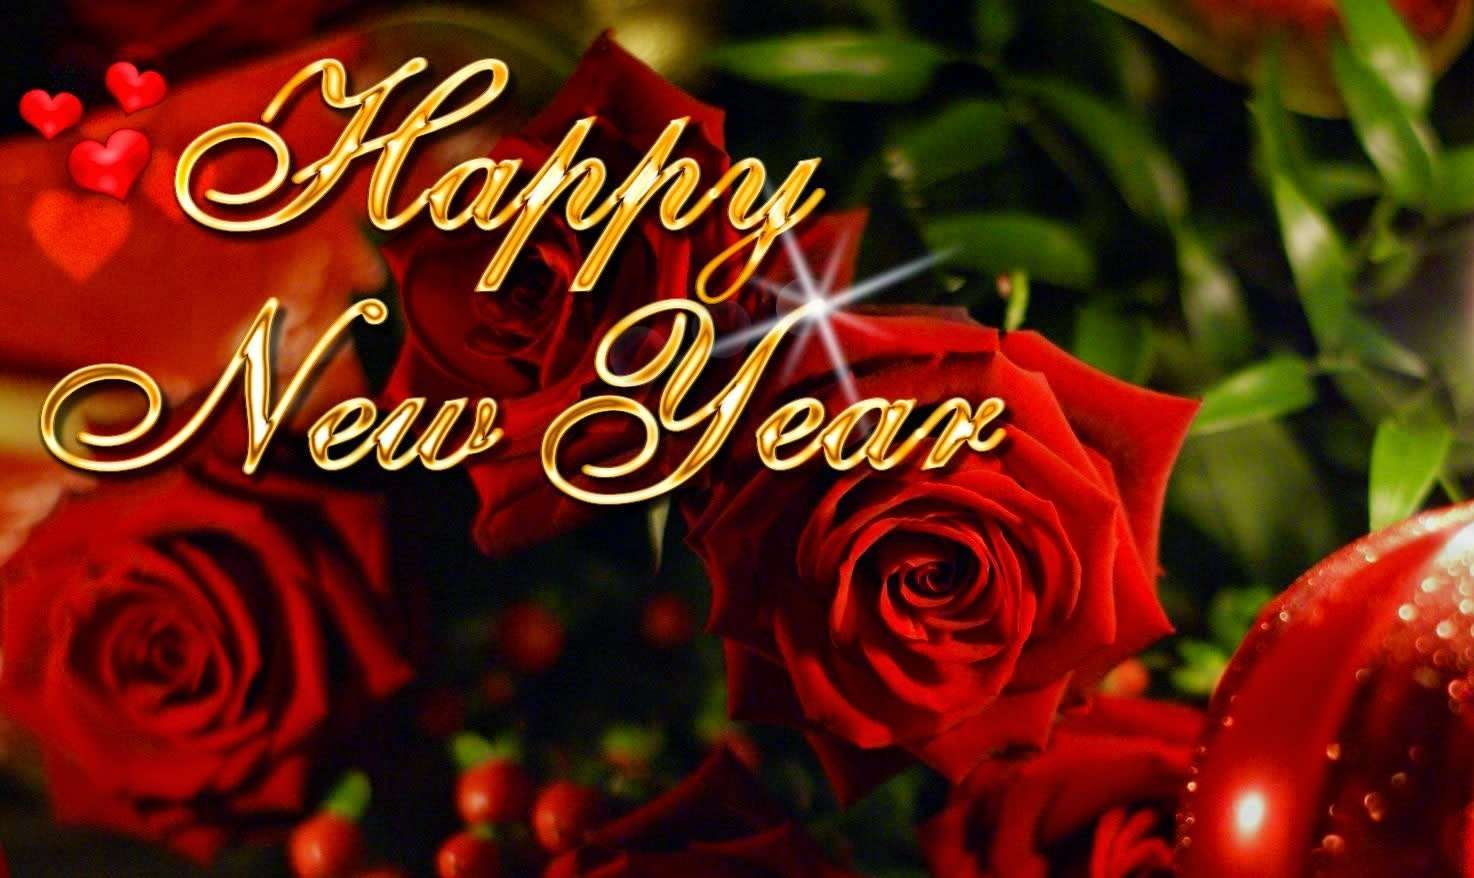 Wallpaper download new year 2015 - Top 18 Happy New Year 2017 Wallpapers Happy New Year Wallpapers Download Now